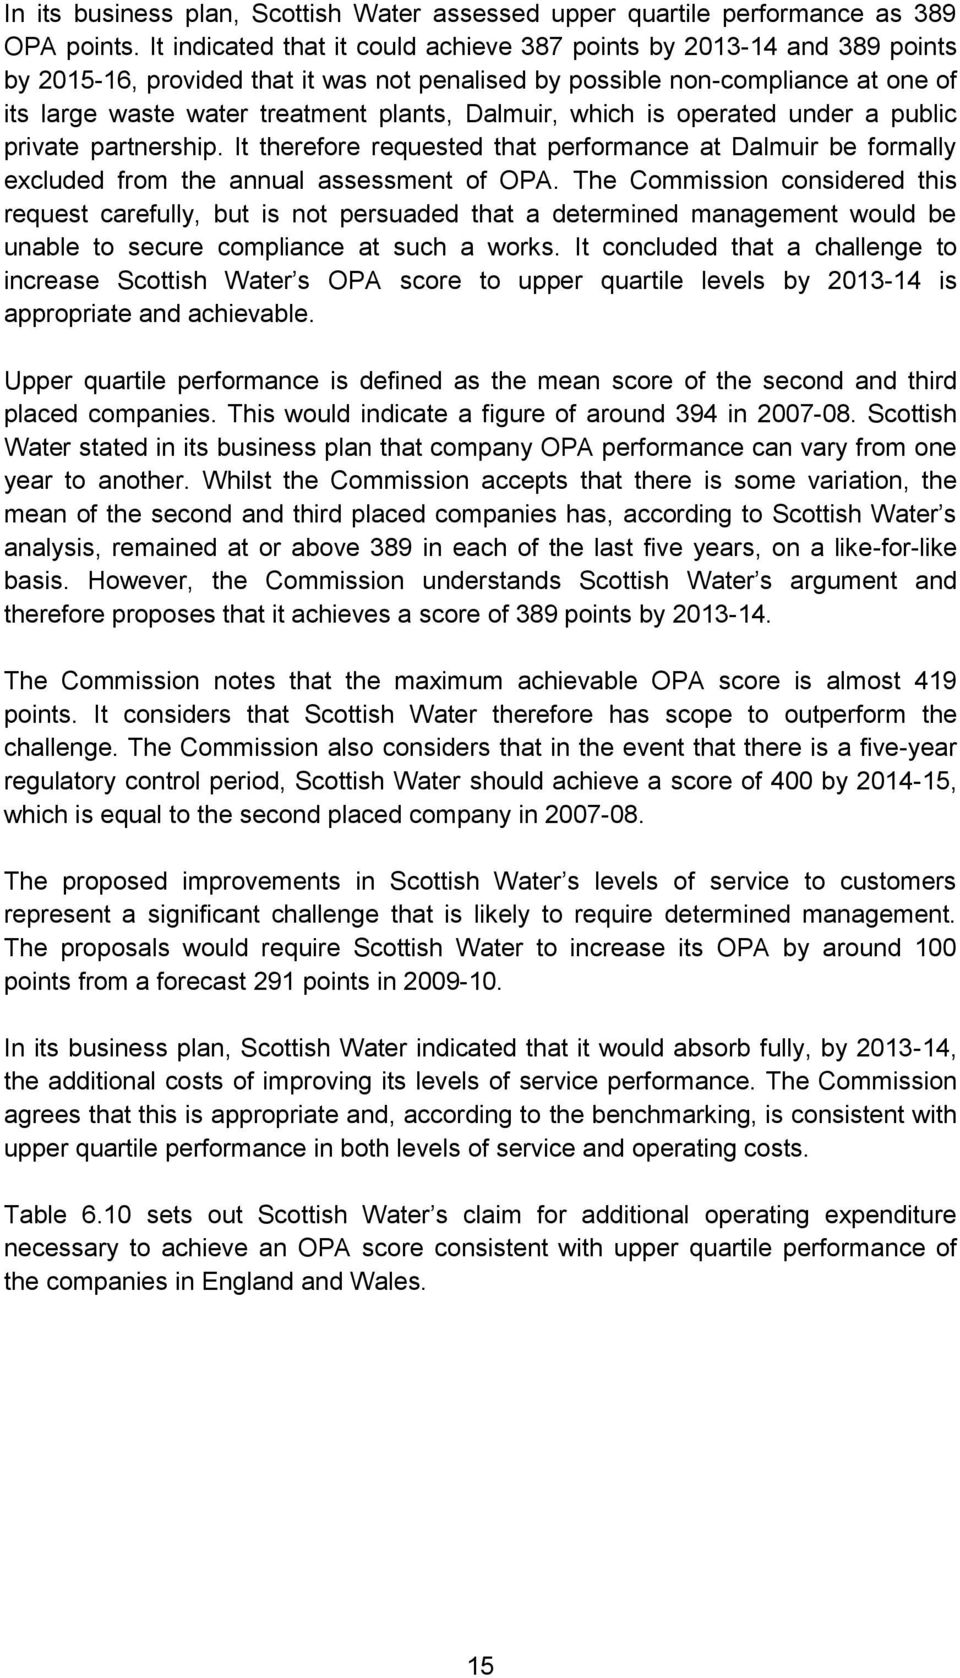 Dalmuir, which is operated under a public private partnership. It therefore requested that performance at Dalmuir be formally excluded from the annual assessment of OPA.